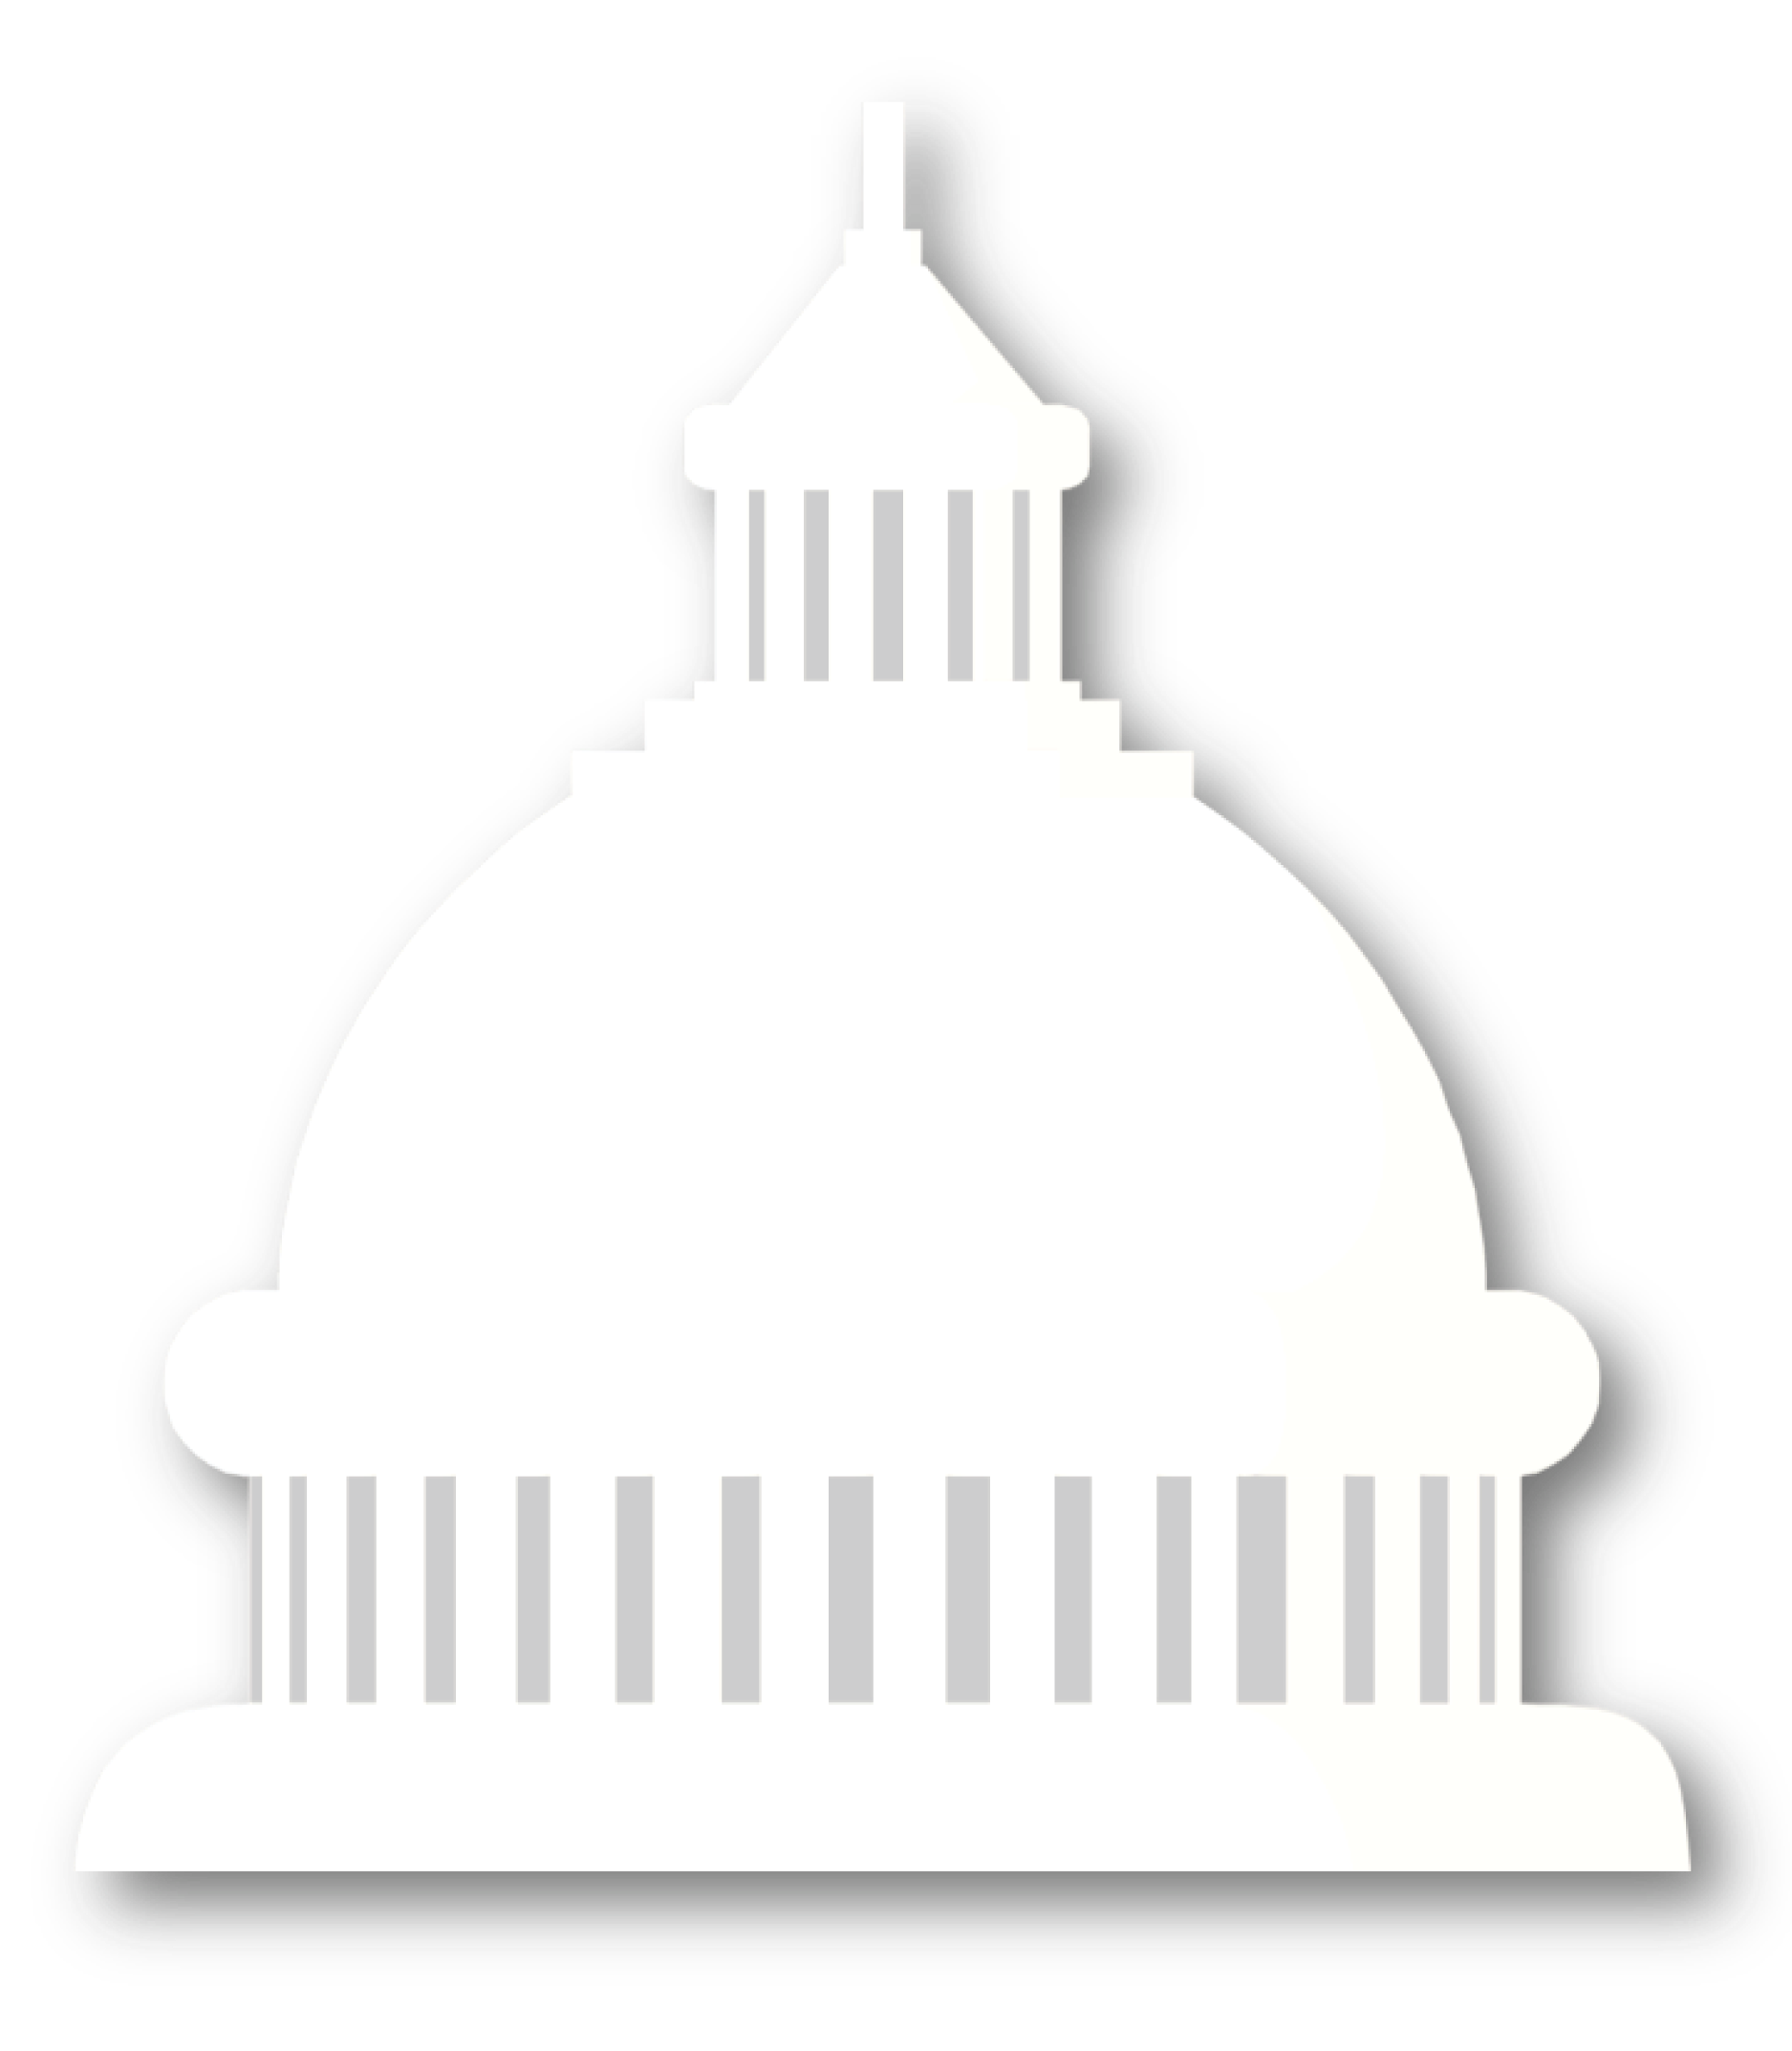 Capitol building clipart png graphic black and white stock Home | Capitol Leasing & Financing Services graphic black and white stock